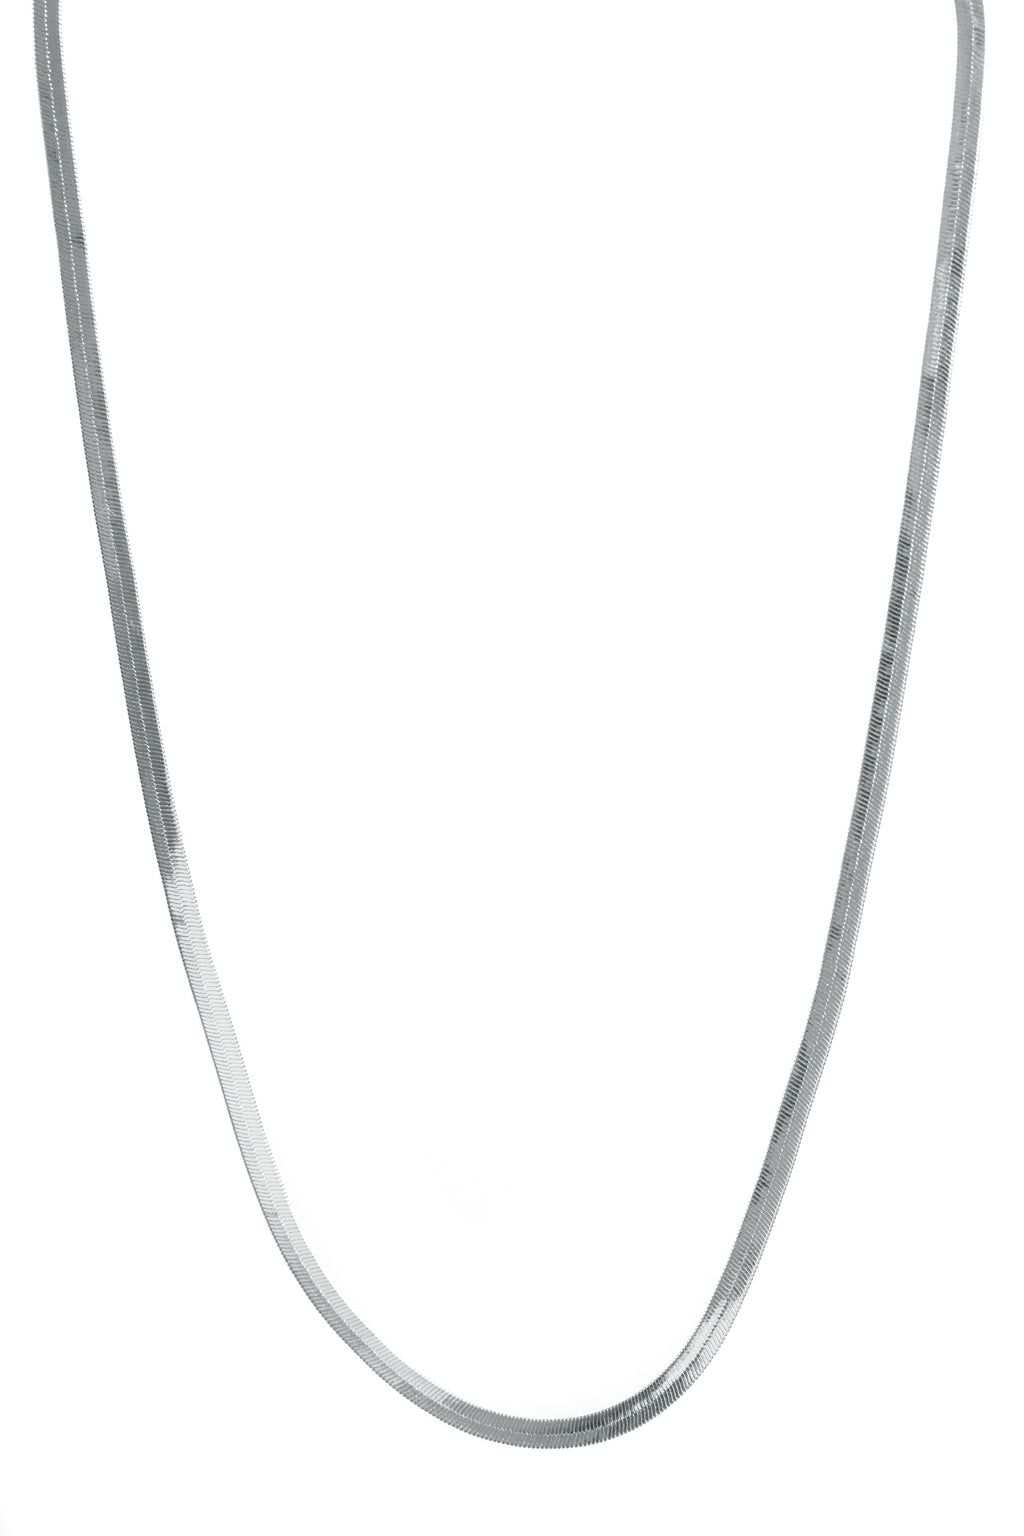 Necklace, Silver, Herringbone